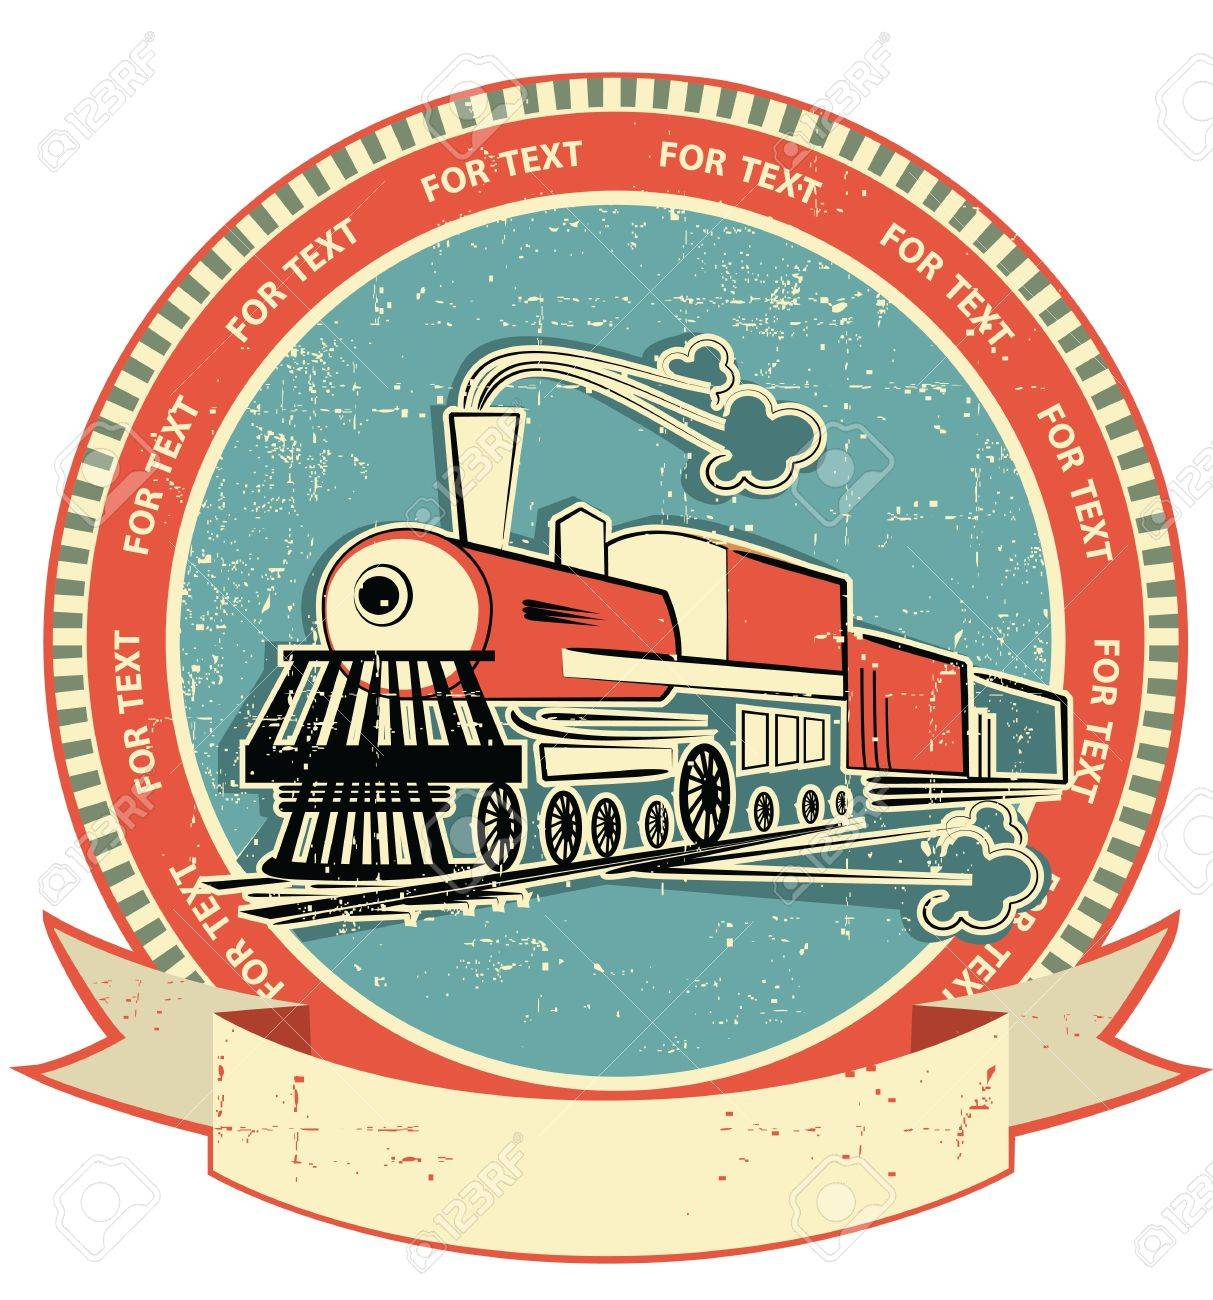 Locomotive label.Vintage style on old texture for text - 12331161